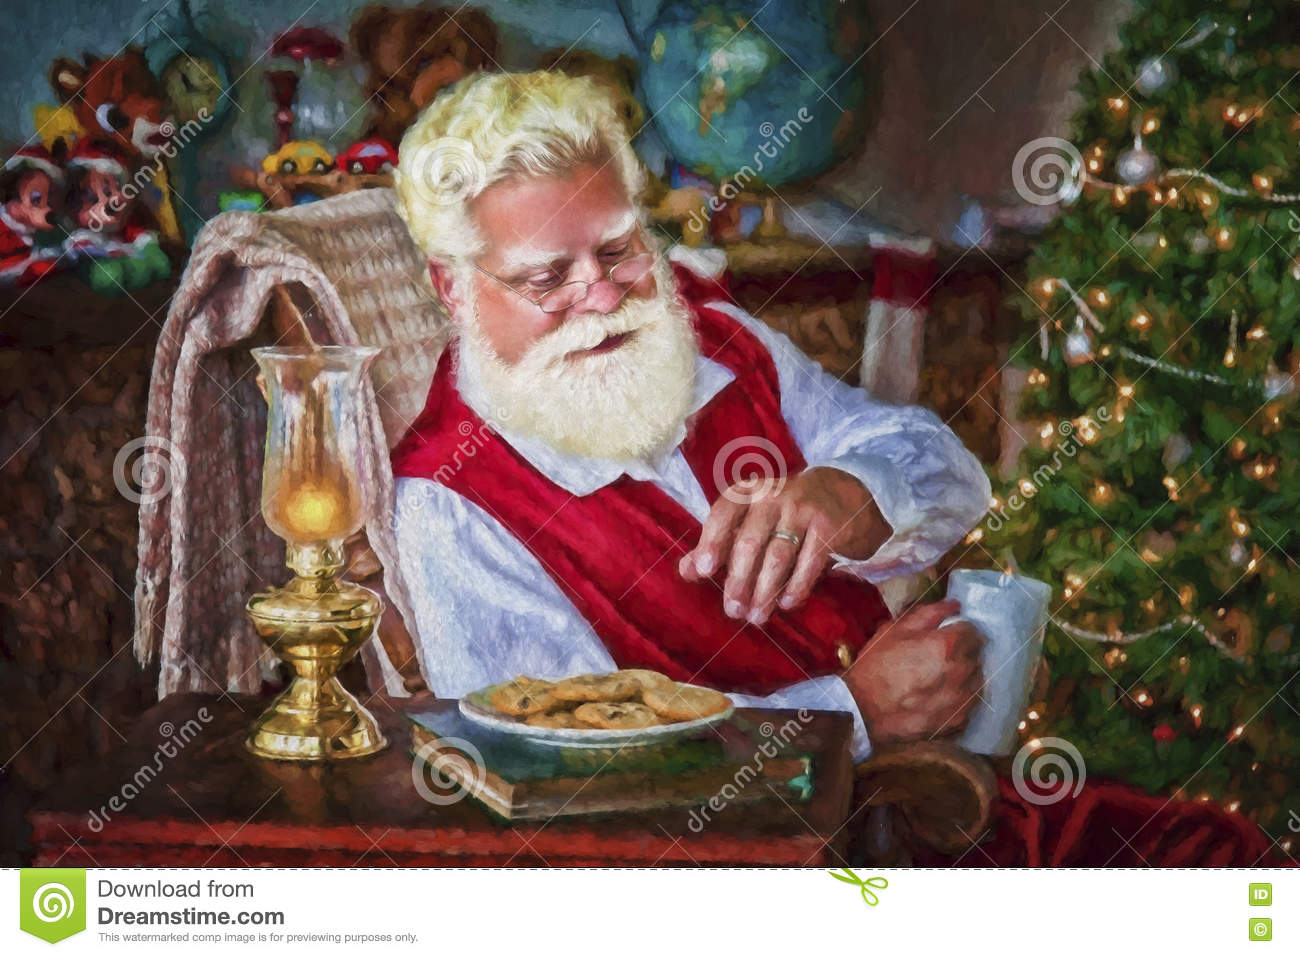 Santa With Cookies And Hot Chocolate Stock Image Image Of Claus